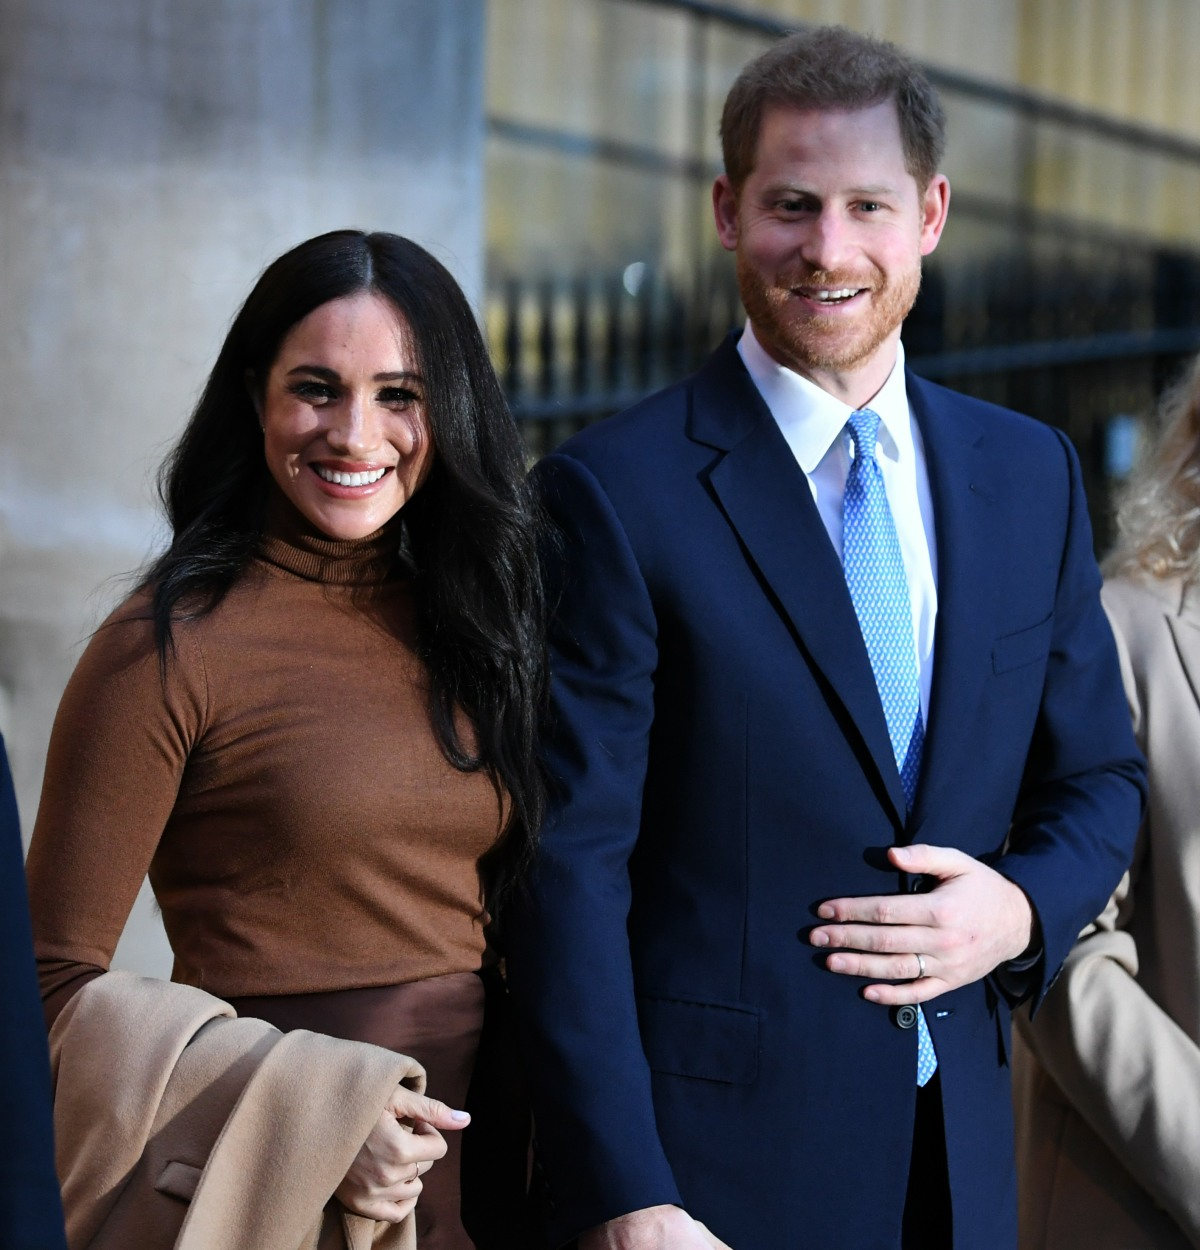 Britain's Prince Harry, Duke of Sussex (2R) and Meghan, Duchess of Sussex (2L) stand with the High Commissioner for Canada in the United Kingdom, Janice Charette (R) and the deputy High Commissioner, Sarah Fountain Smith (L), as they leave after their visi